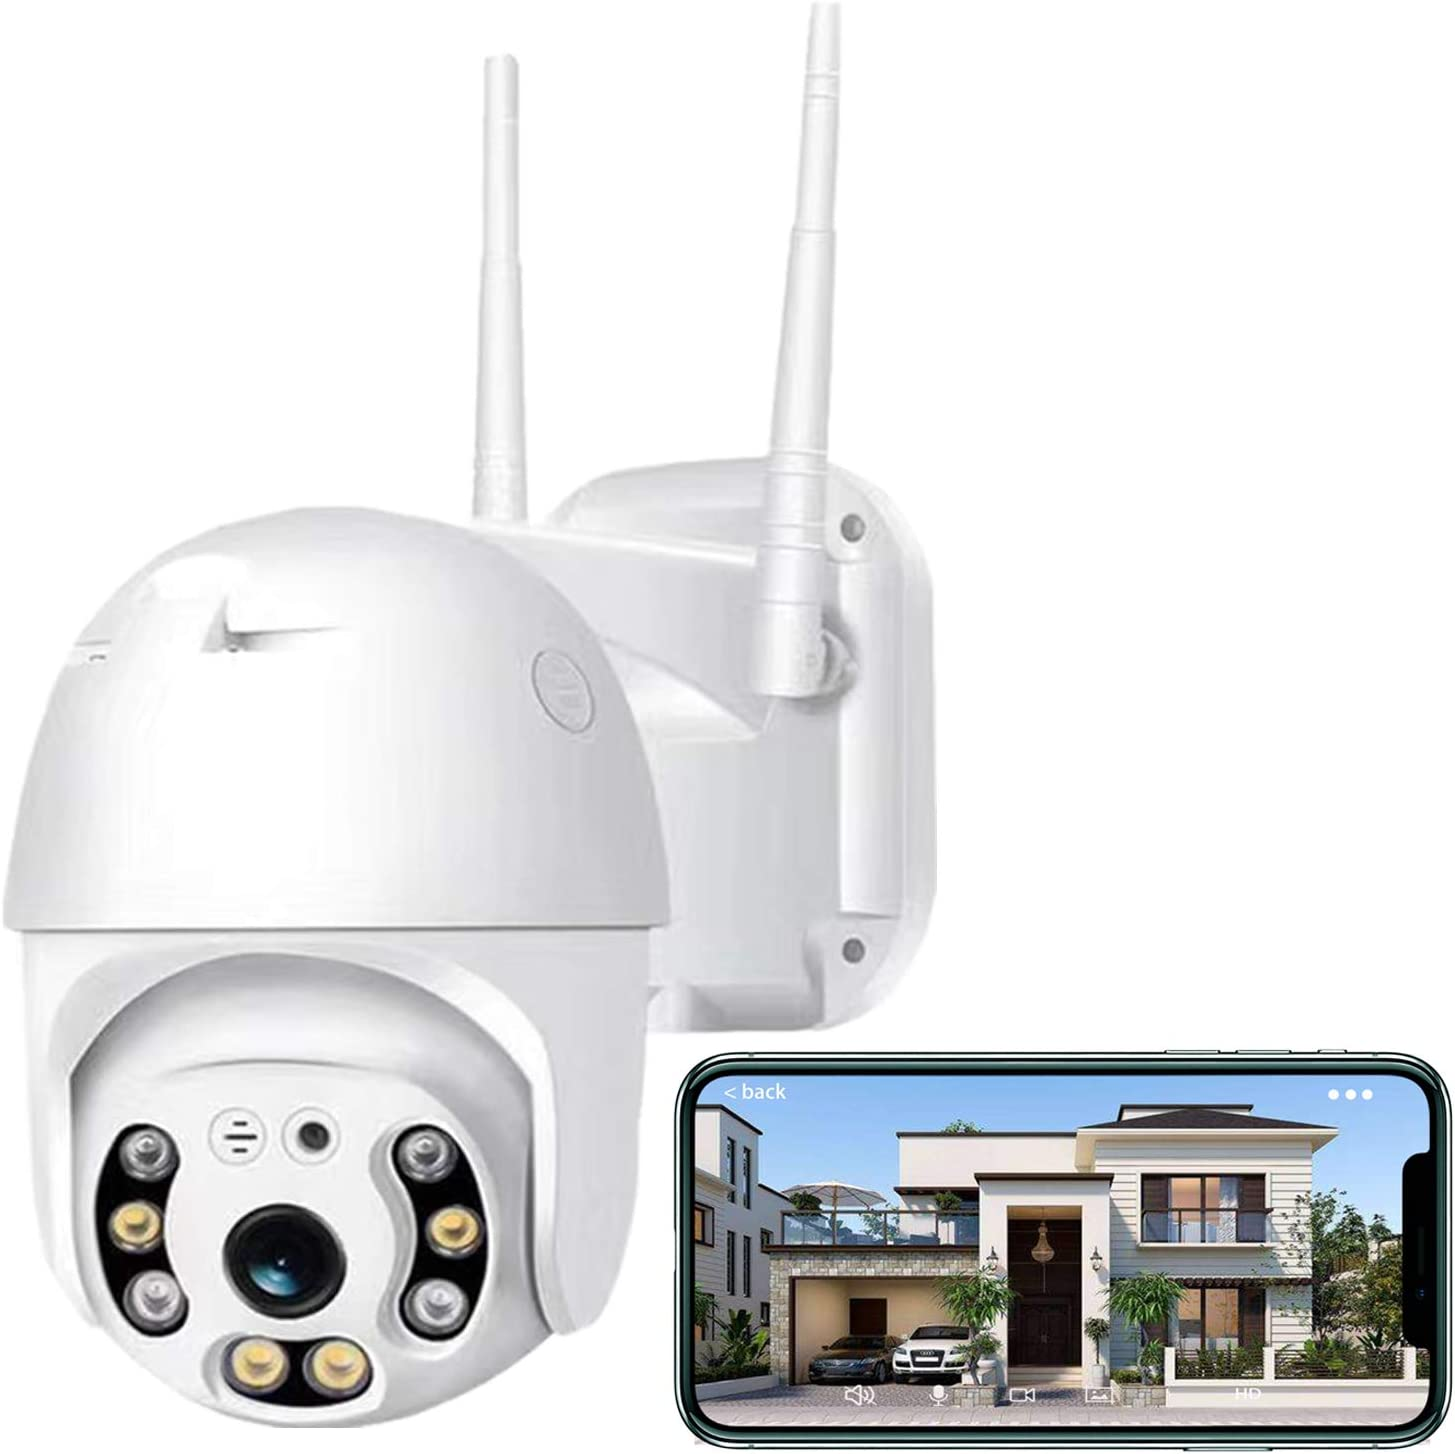 Security Camera Outdoor,Iposter 1080P HD WiFi Home Security Camera System,Wireless Security Camera with 360° View,AI Motion Detection,2-Way Audio Full Color Night Vision IP66 Waterproof